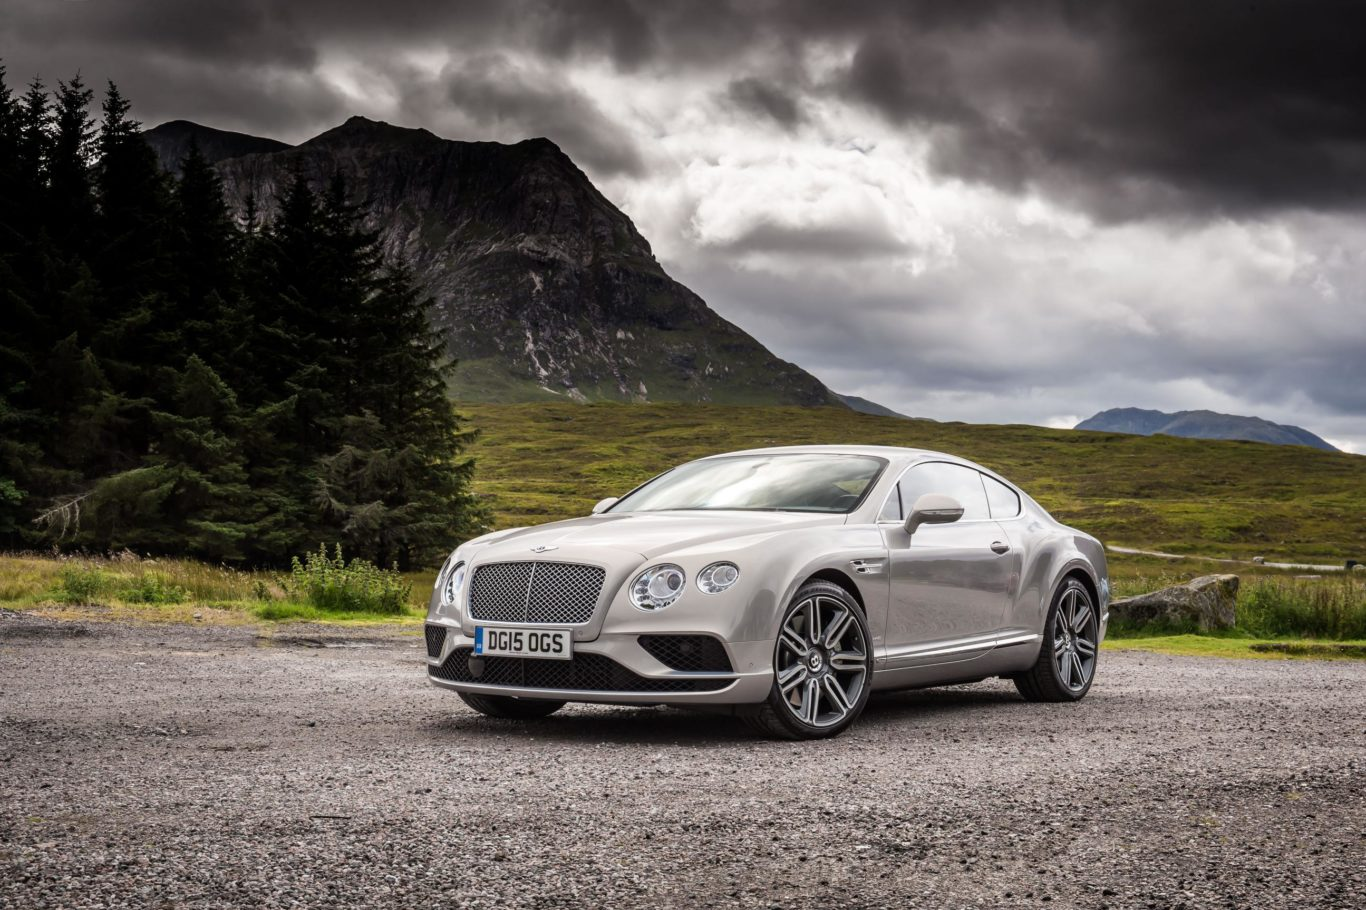 The Continental GT made use of a powerful W12 engine